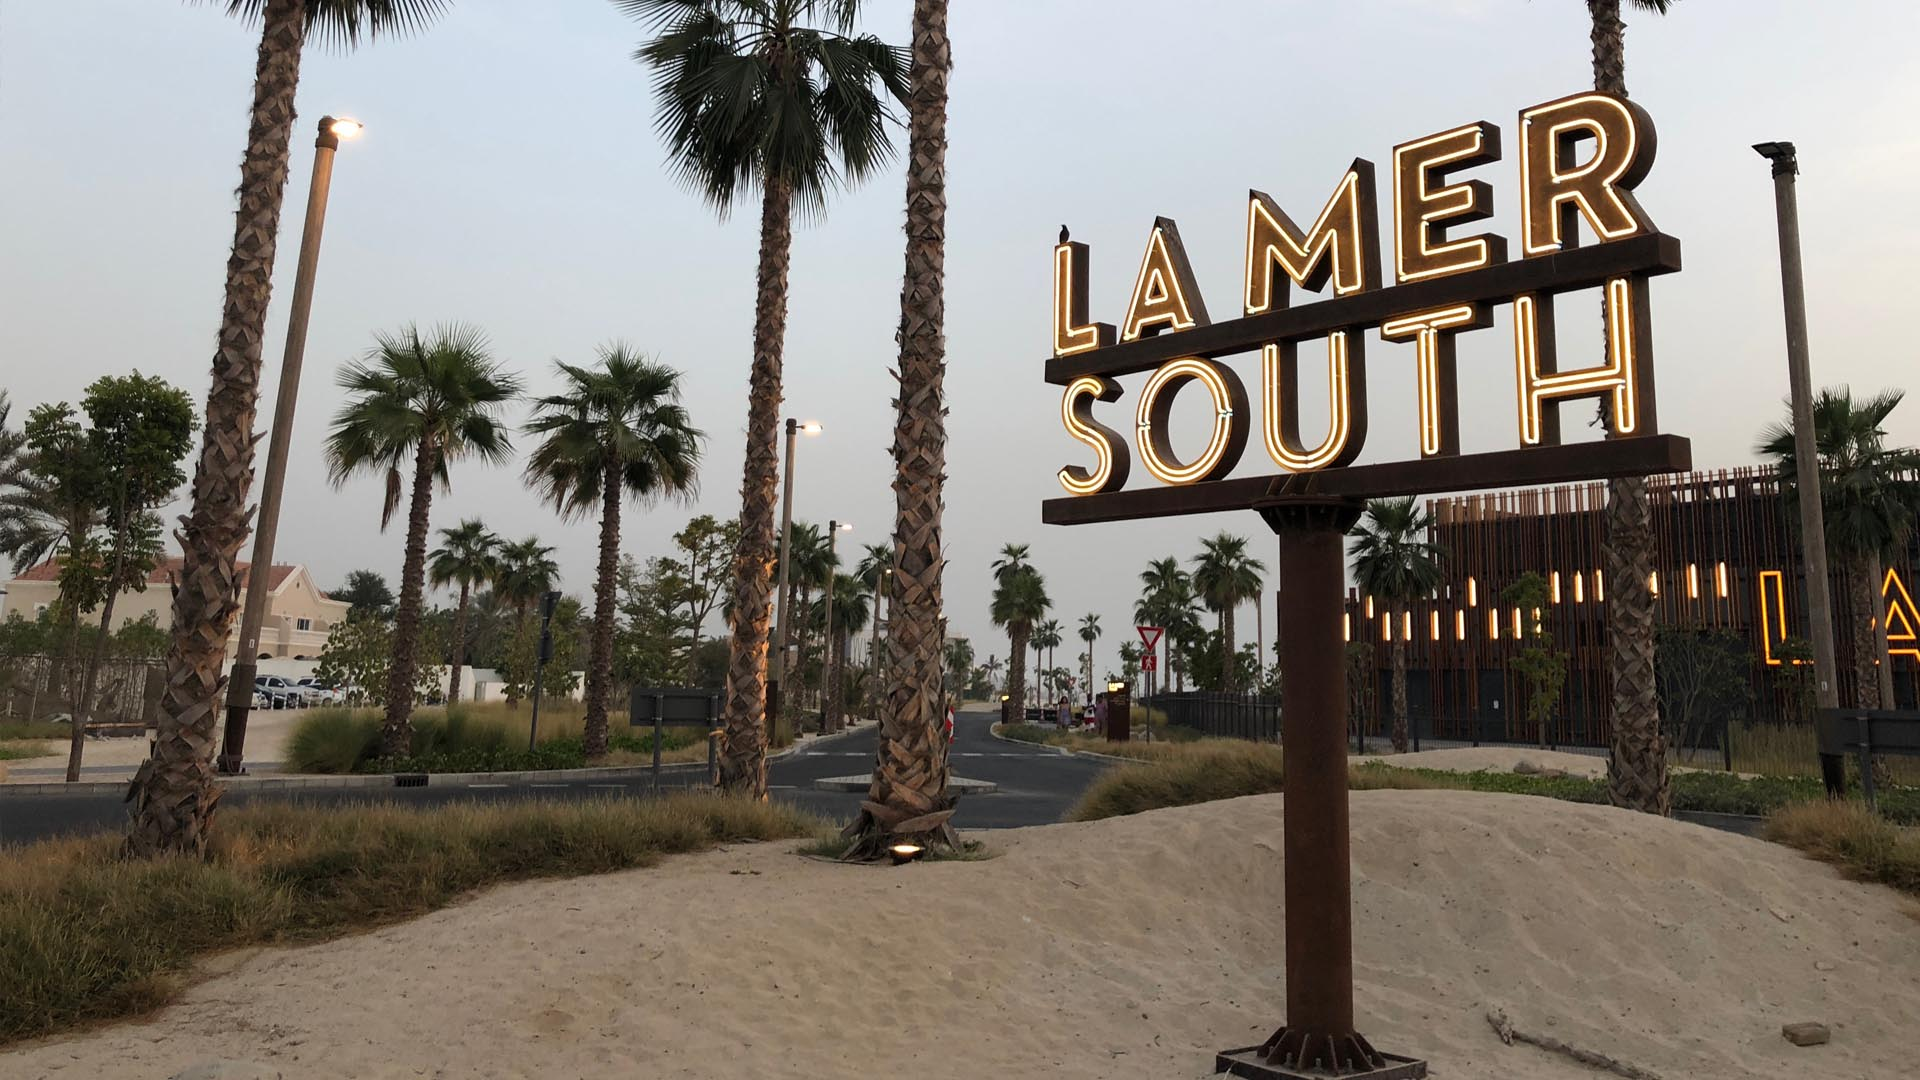 Lamer South Signage from Dezign Technic